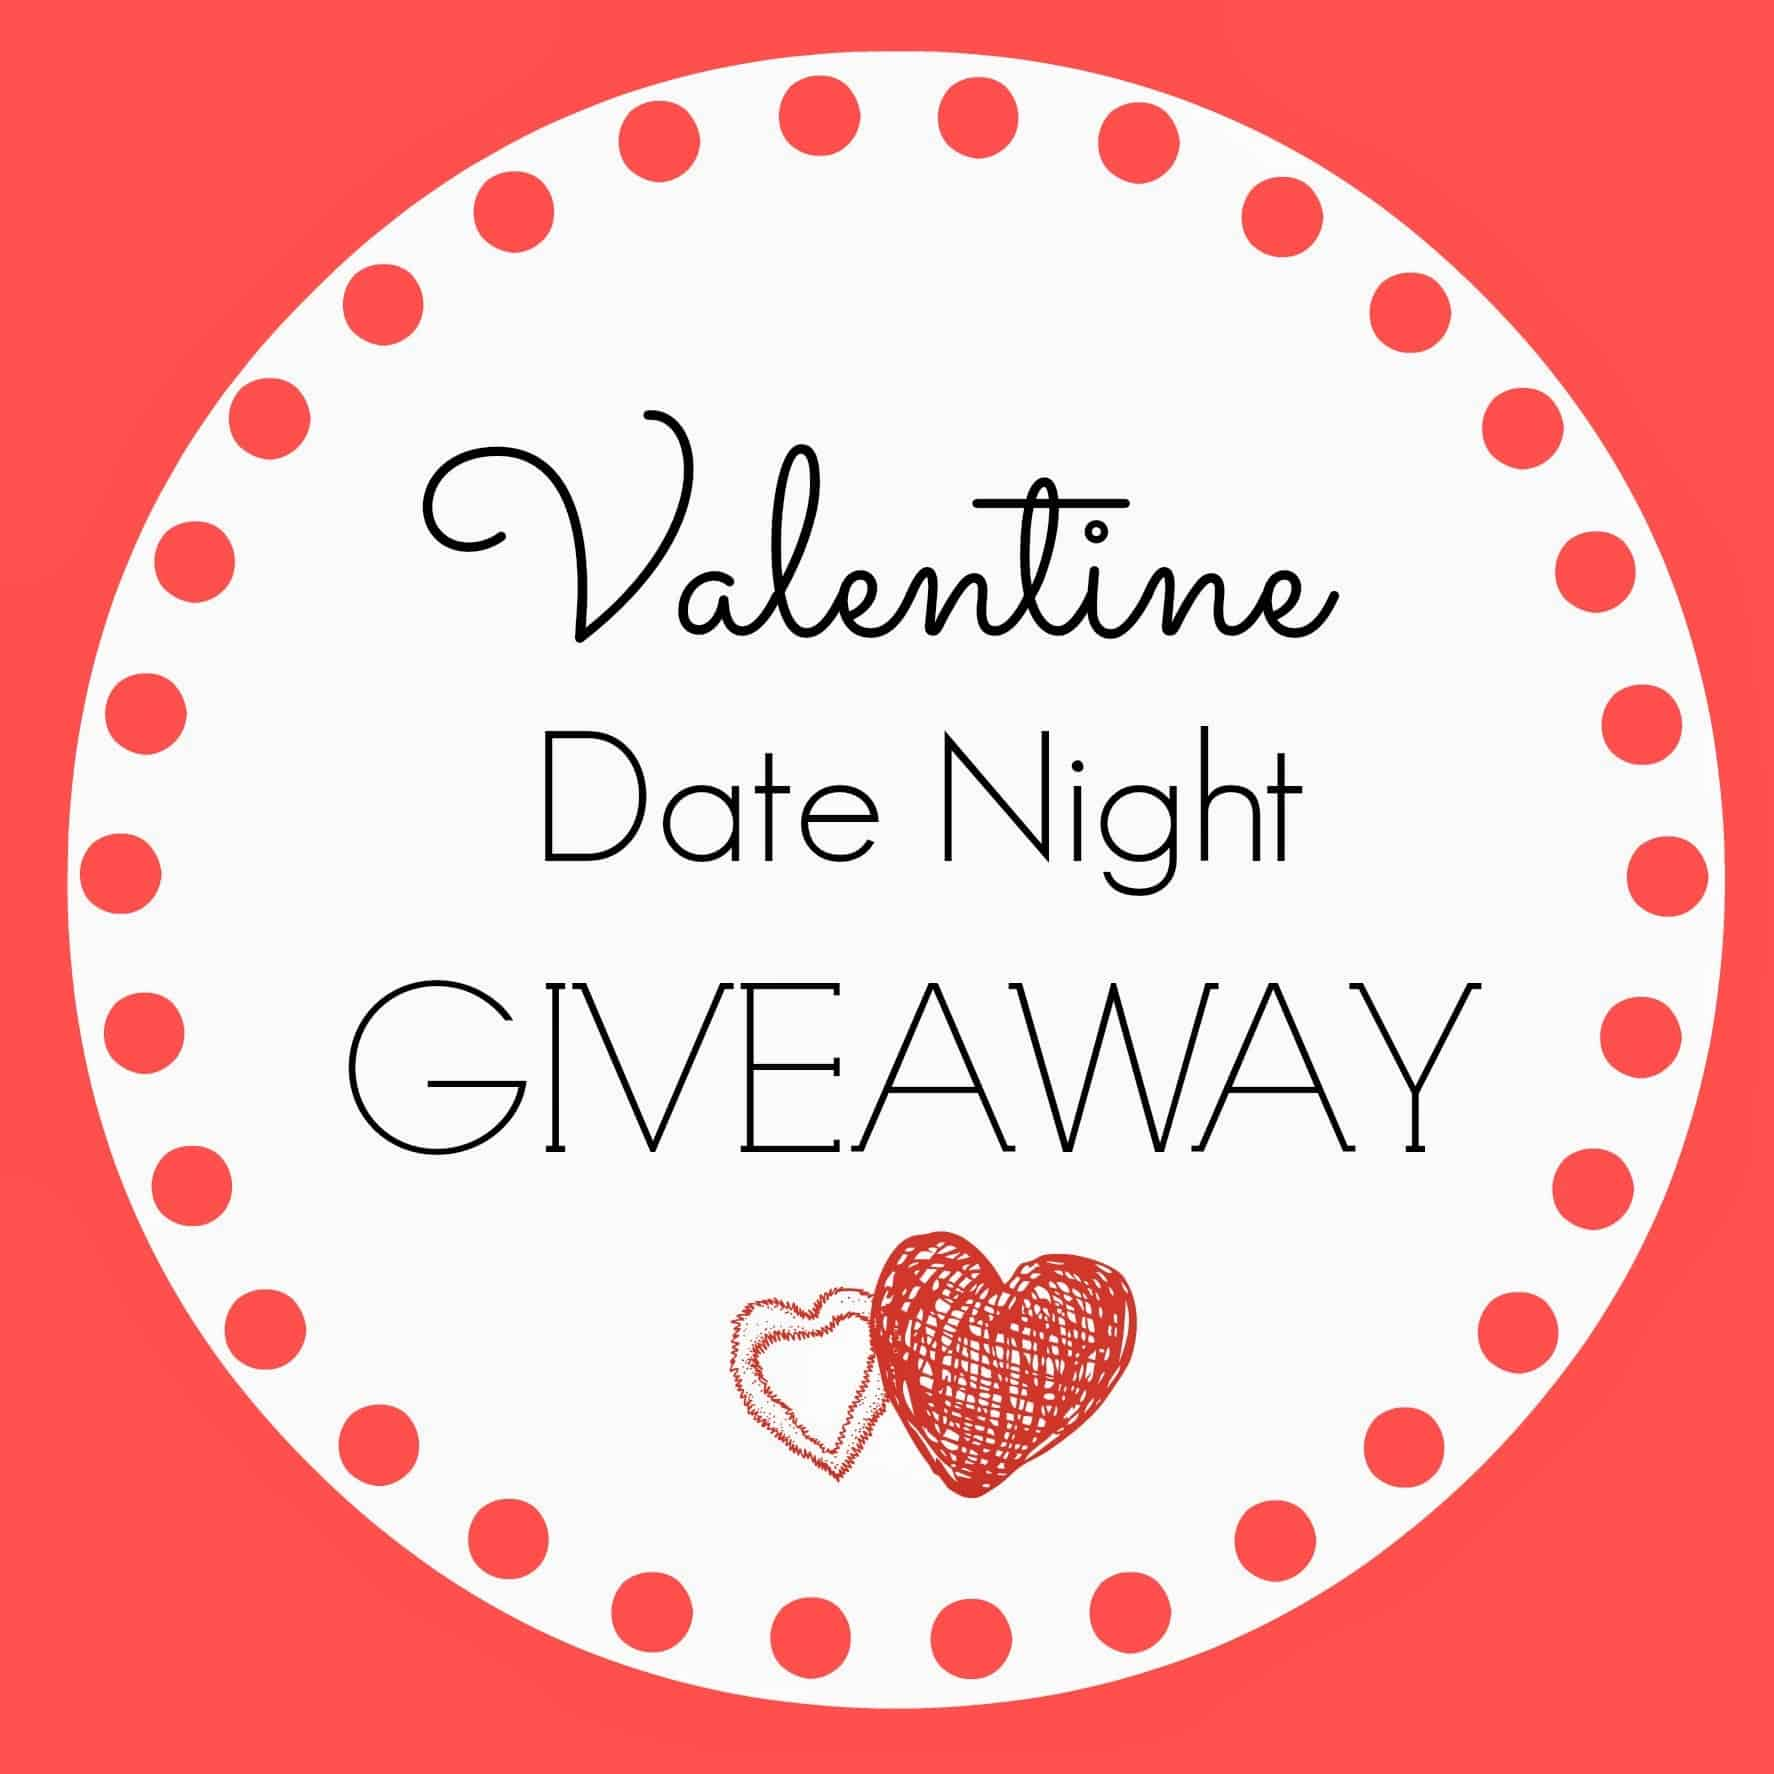 Date Night Give-away